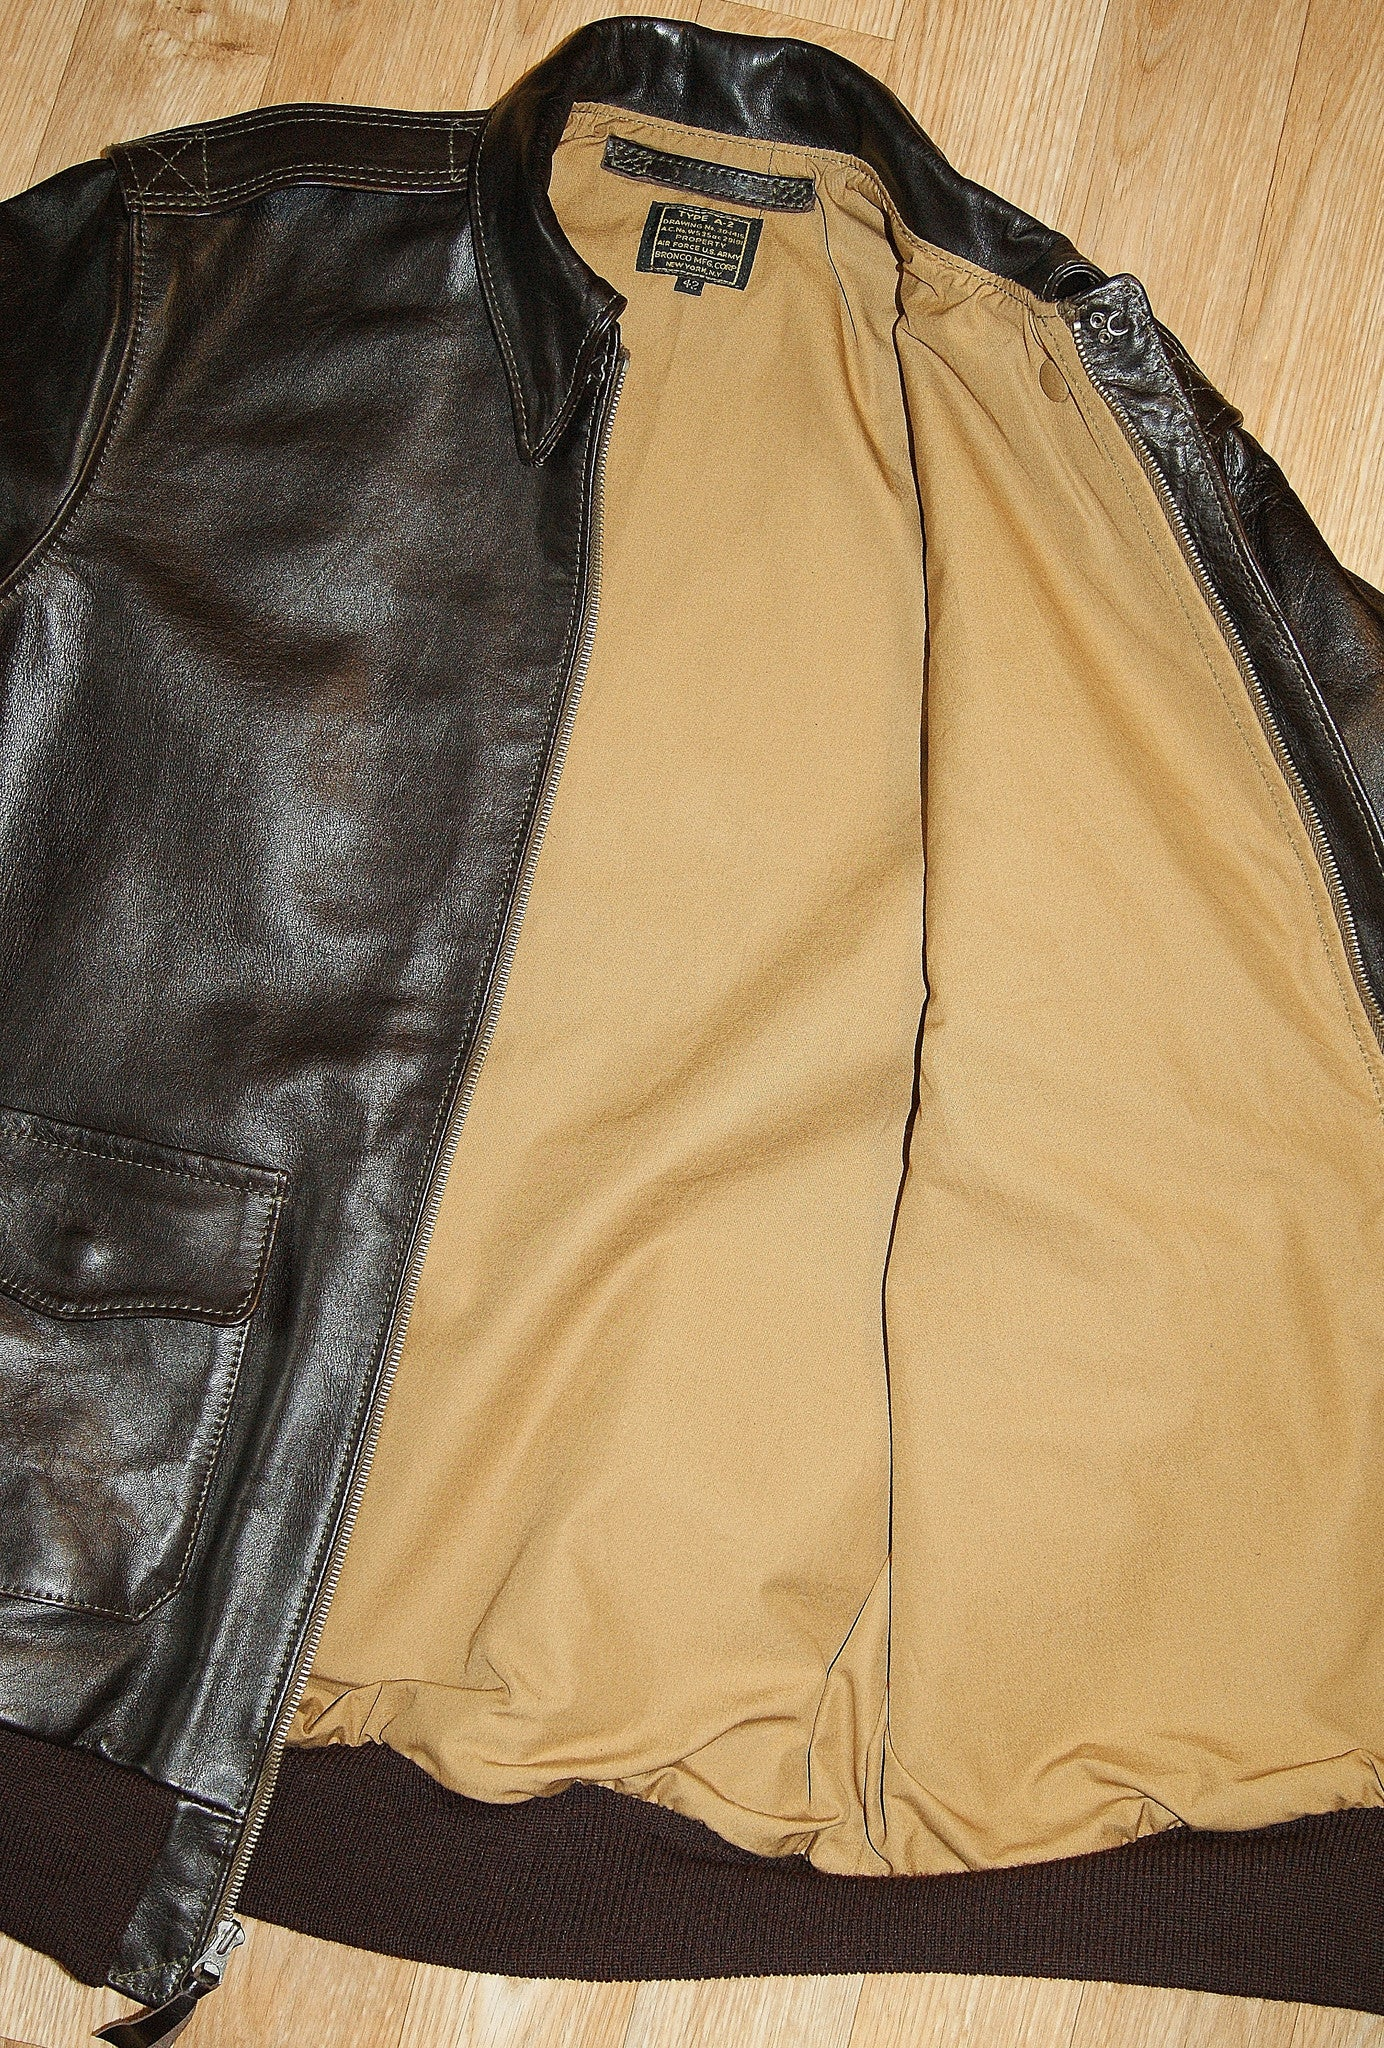 Aero A-2 Military Flight Jacket, size 42L, Dark Seal Vicenza Horsehide